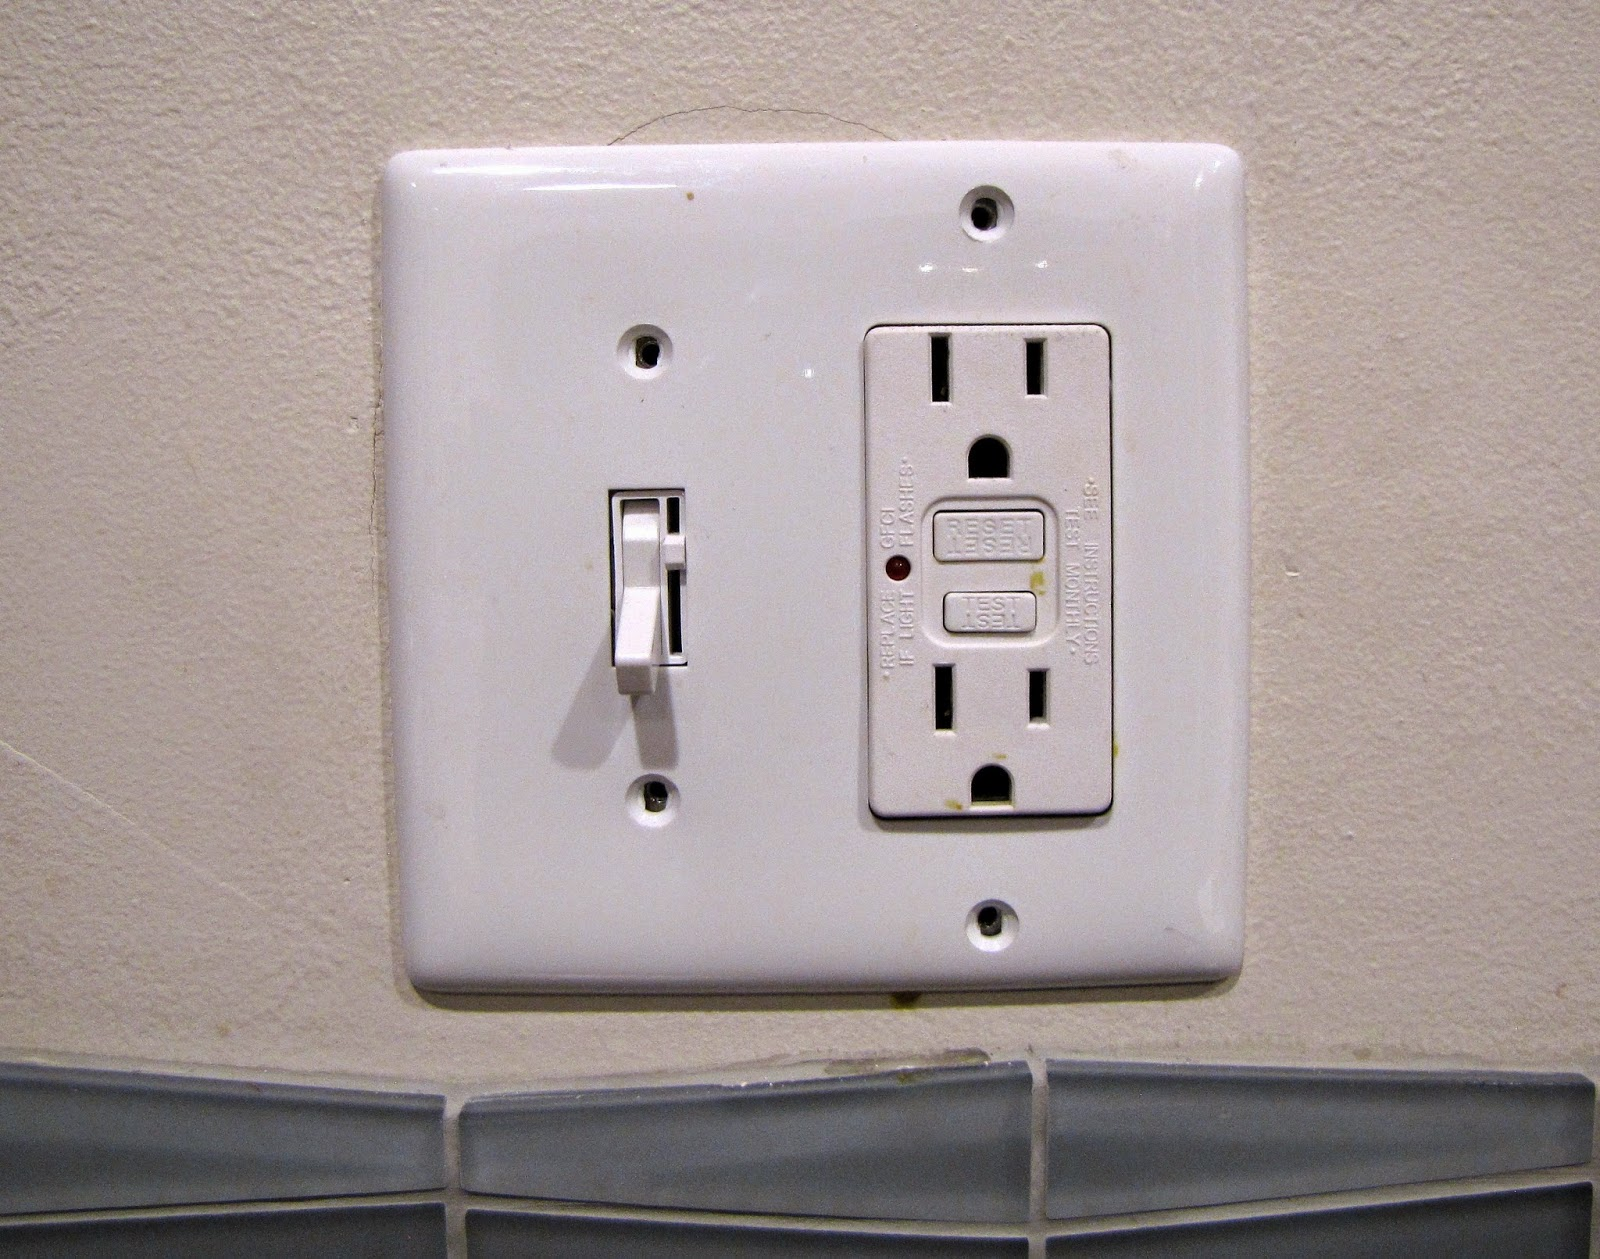 Close-up of the existing switch plate